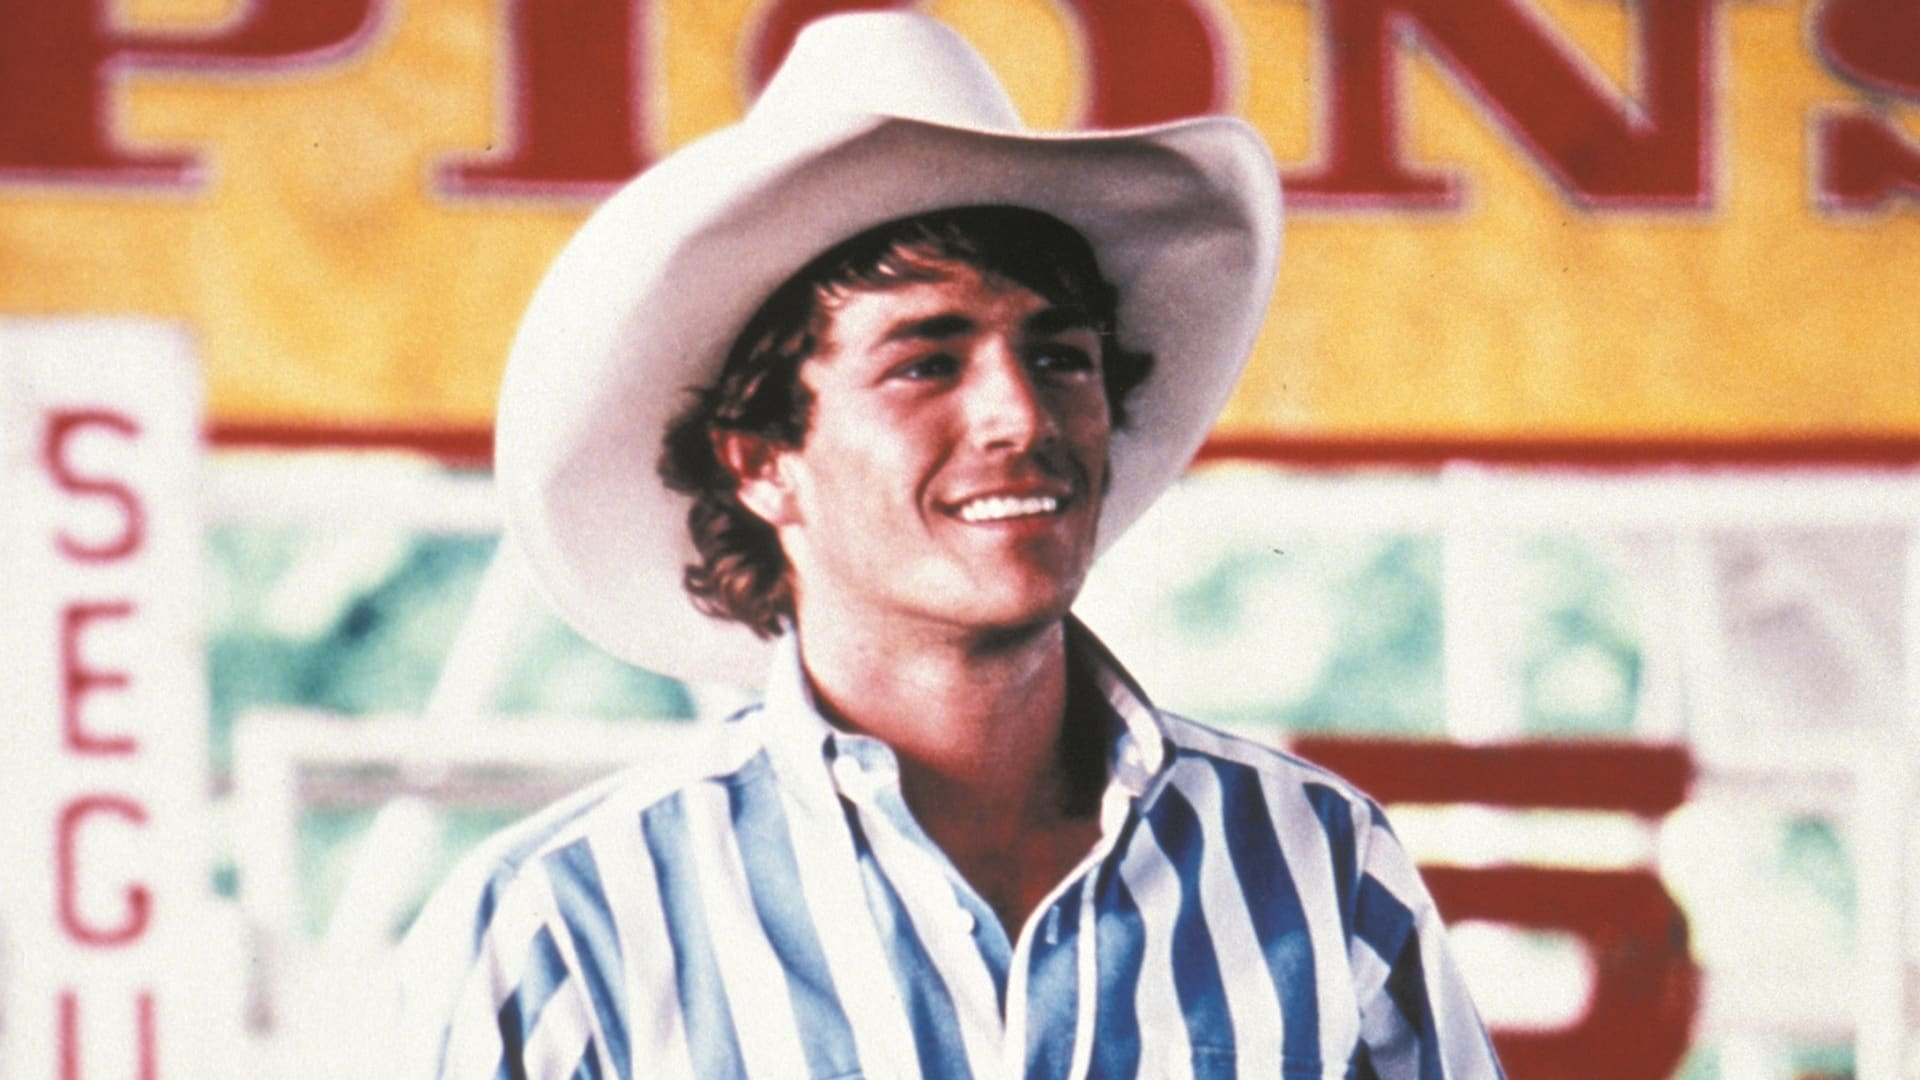 Luke Perry, '8 Seconds' star, dies at 52